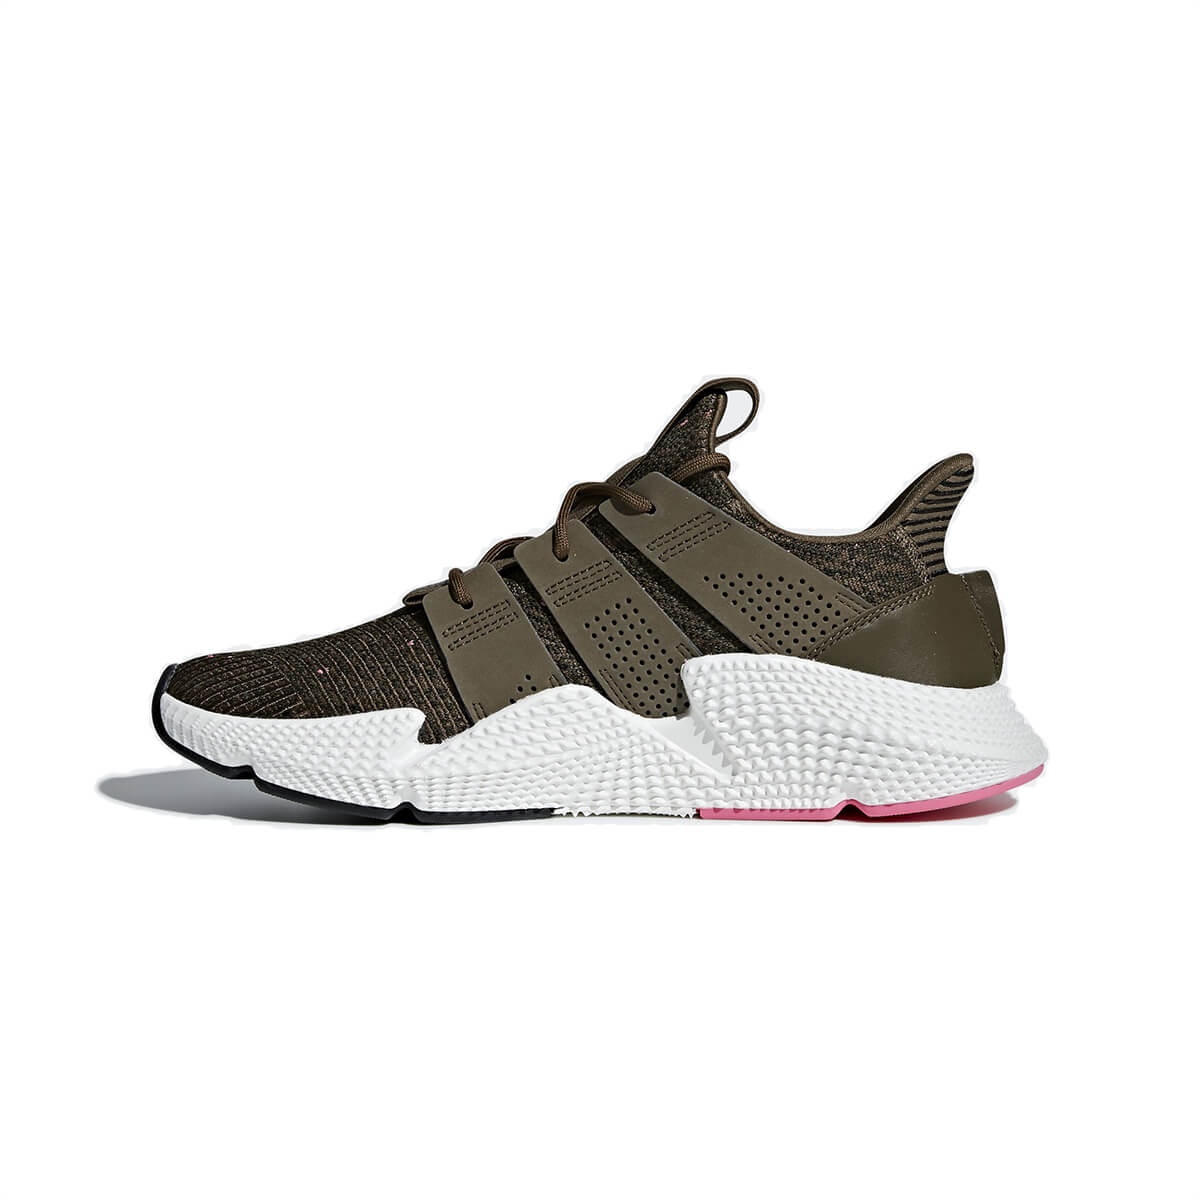 New-Authentic-Adidas-Originals-Prophere-Men-Fashion-Shoes-Black-White-Green-Red thumbnail 28